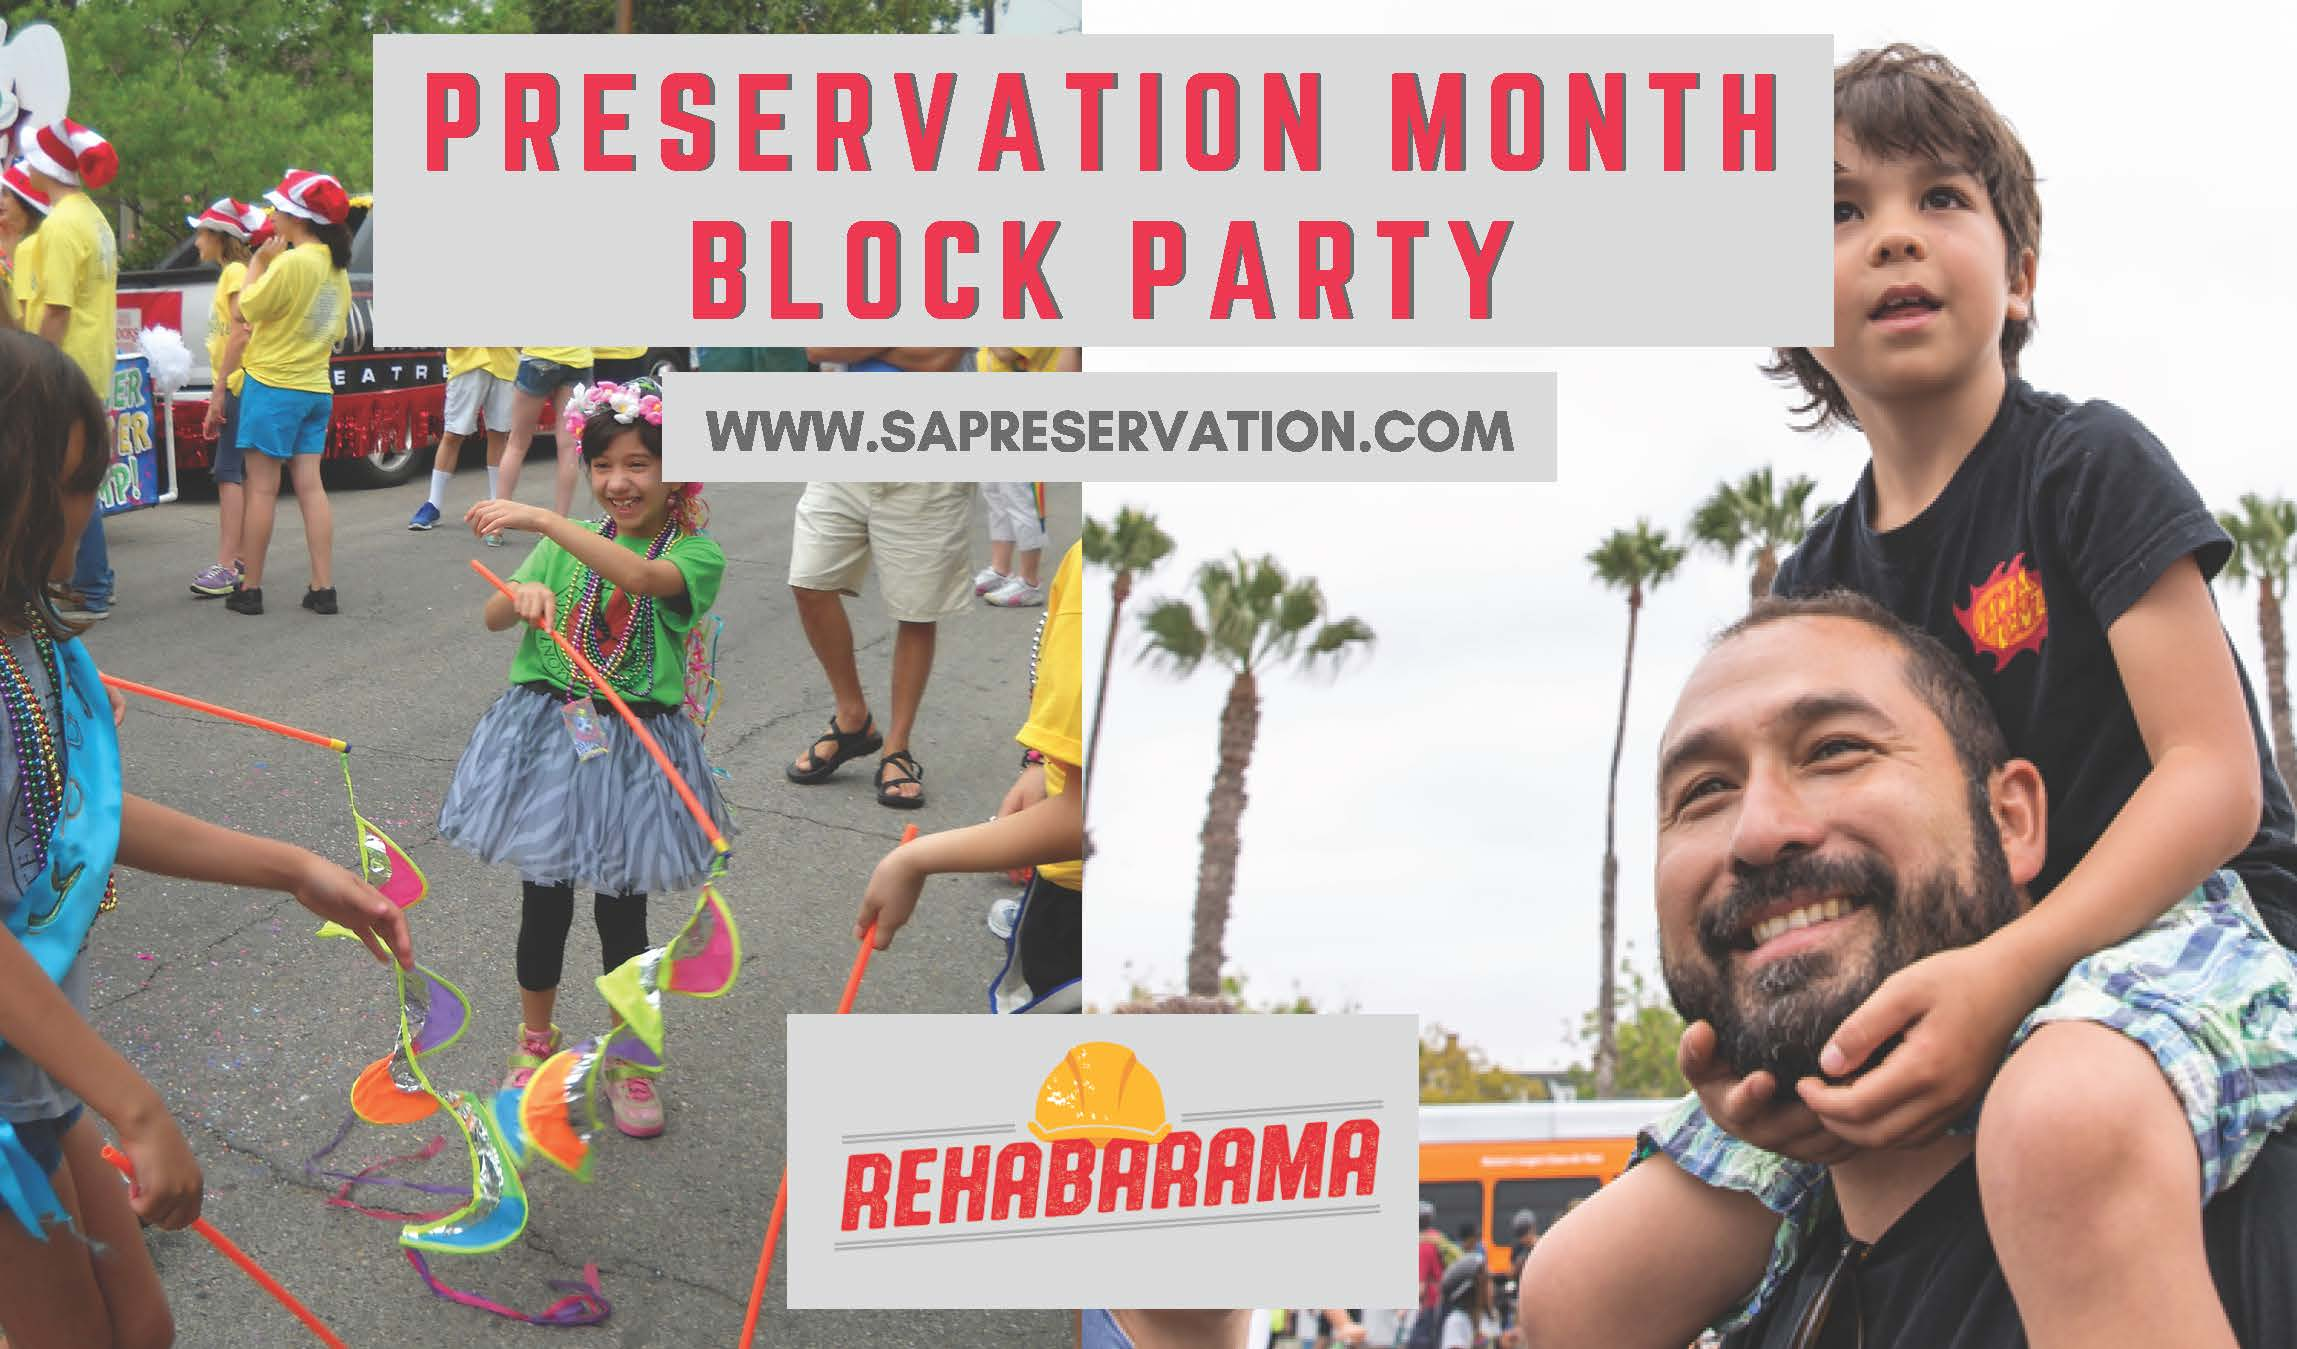 Block party fb event_this one.jpg